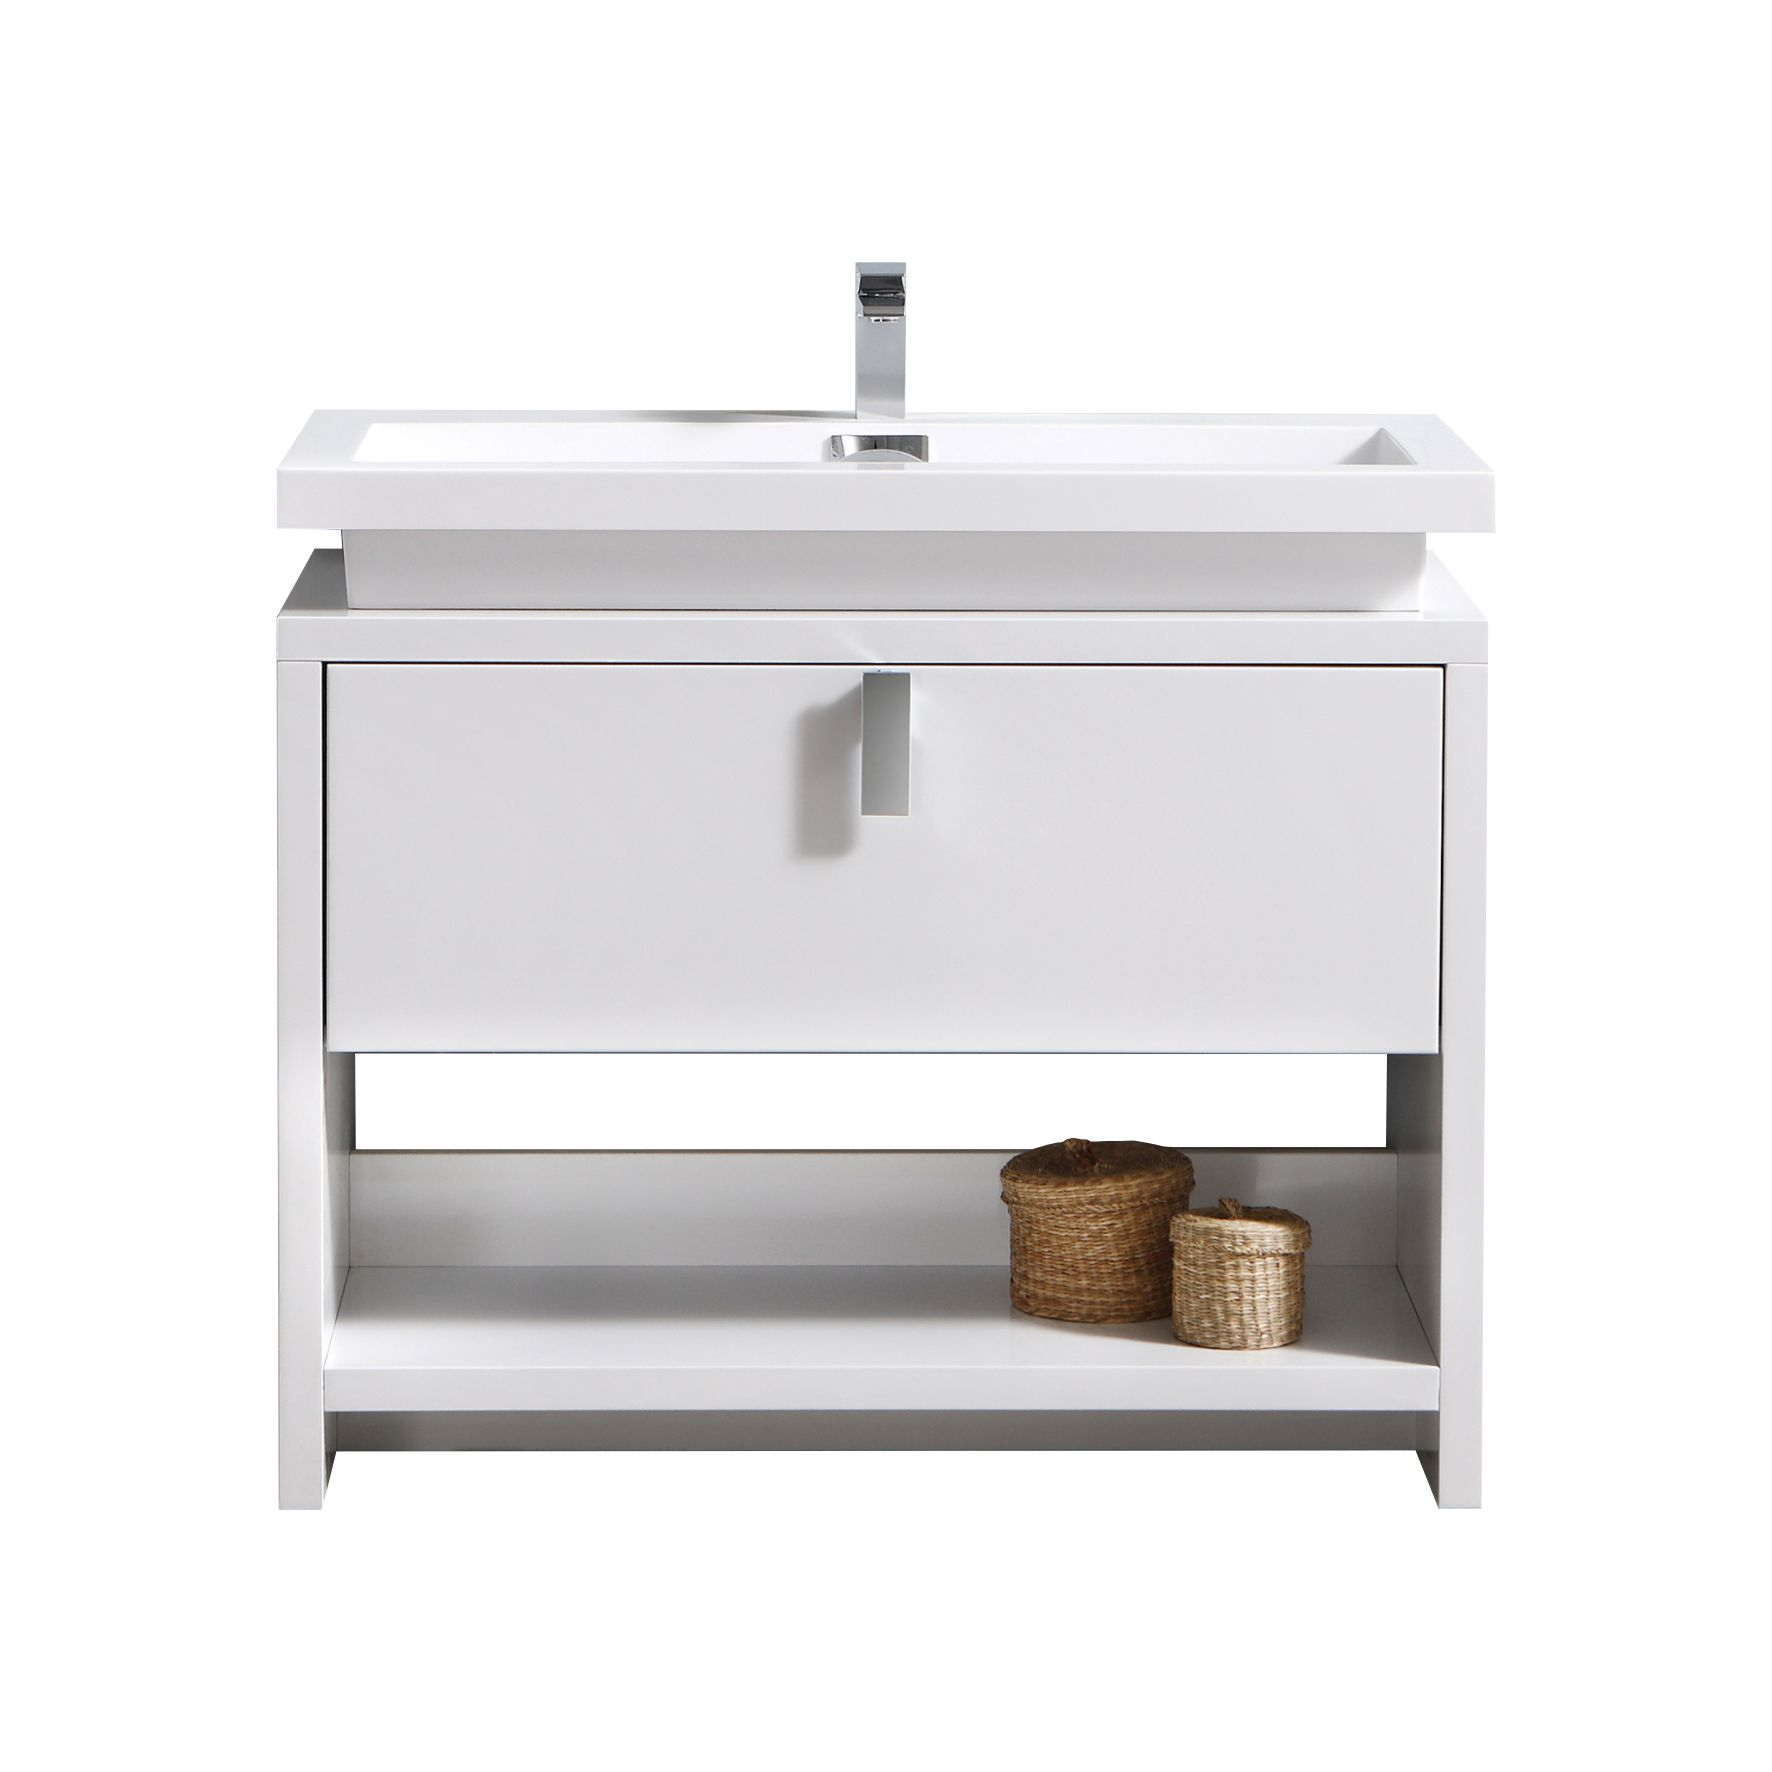 "Modern Lux 40"" High Modern Bathroom Vanity w/ Cubby Hole and Color Option"